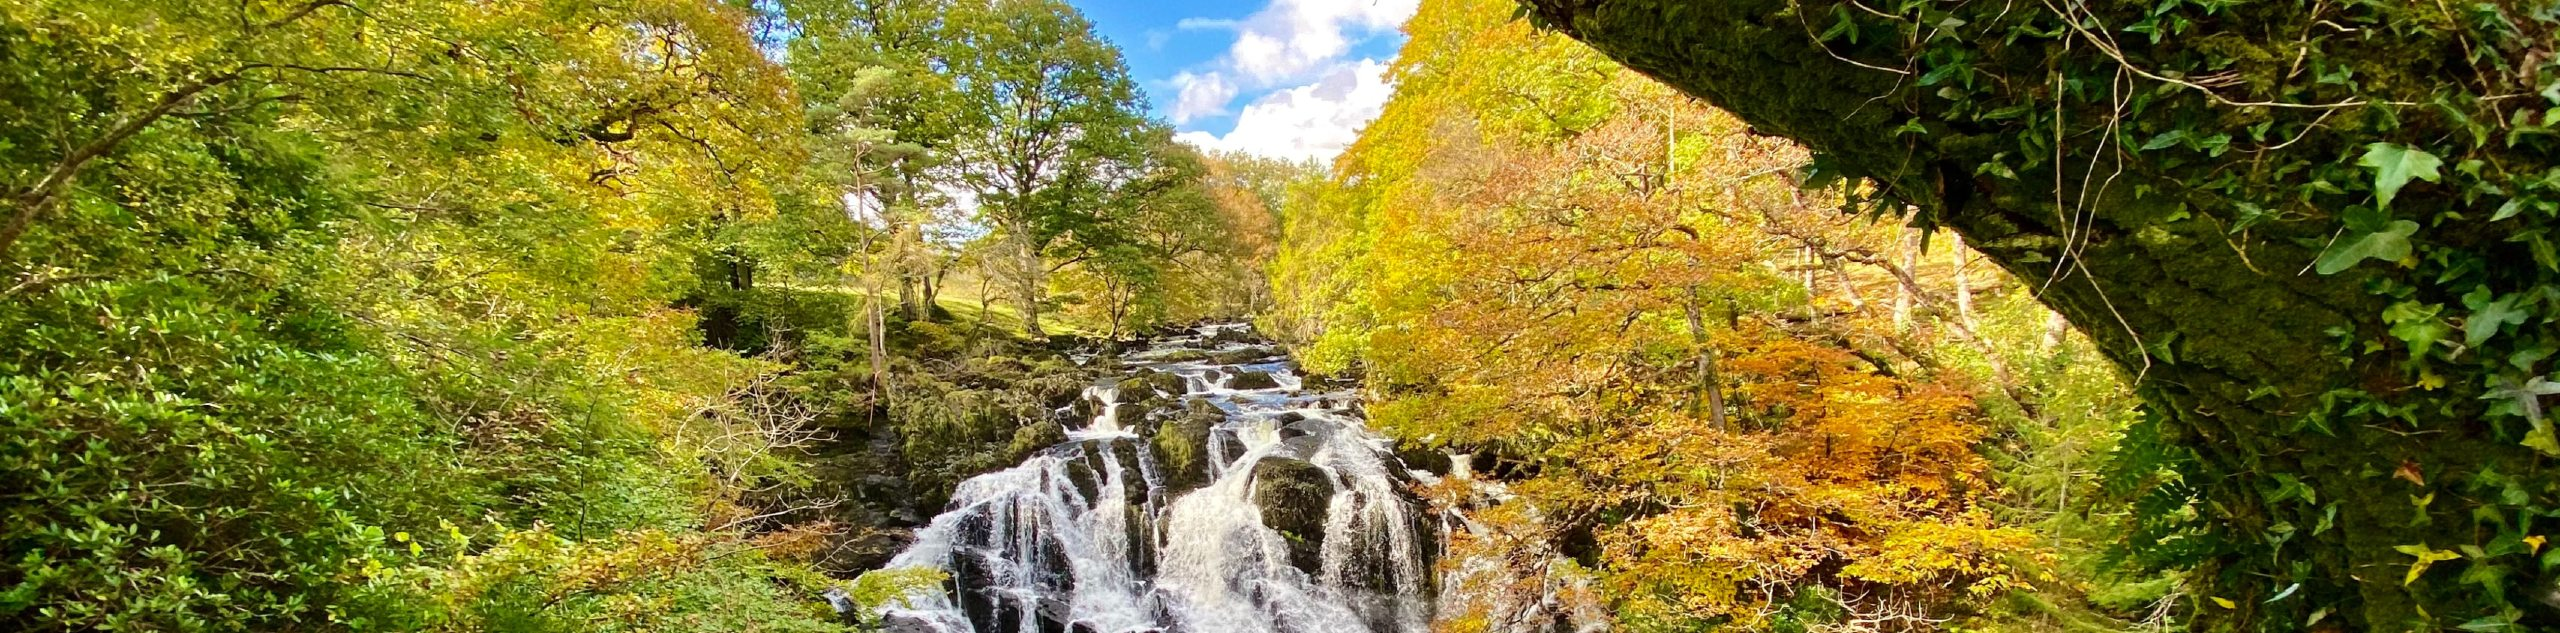 WATERFALL IN SNOWDONIA NATIONAL FOREST